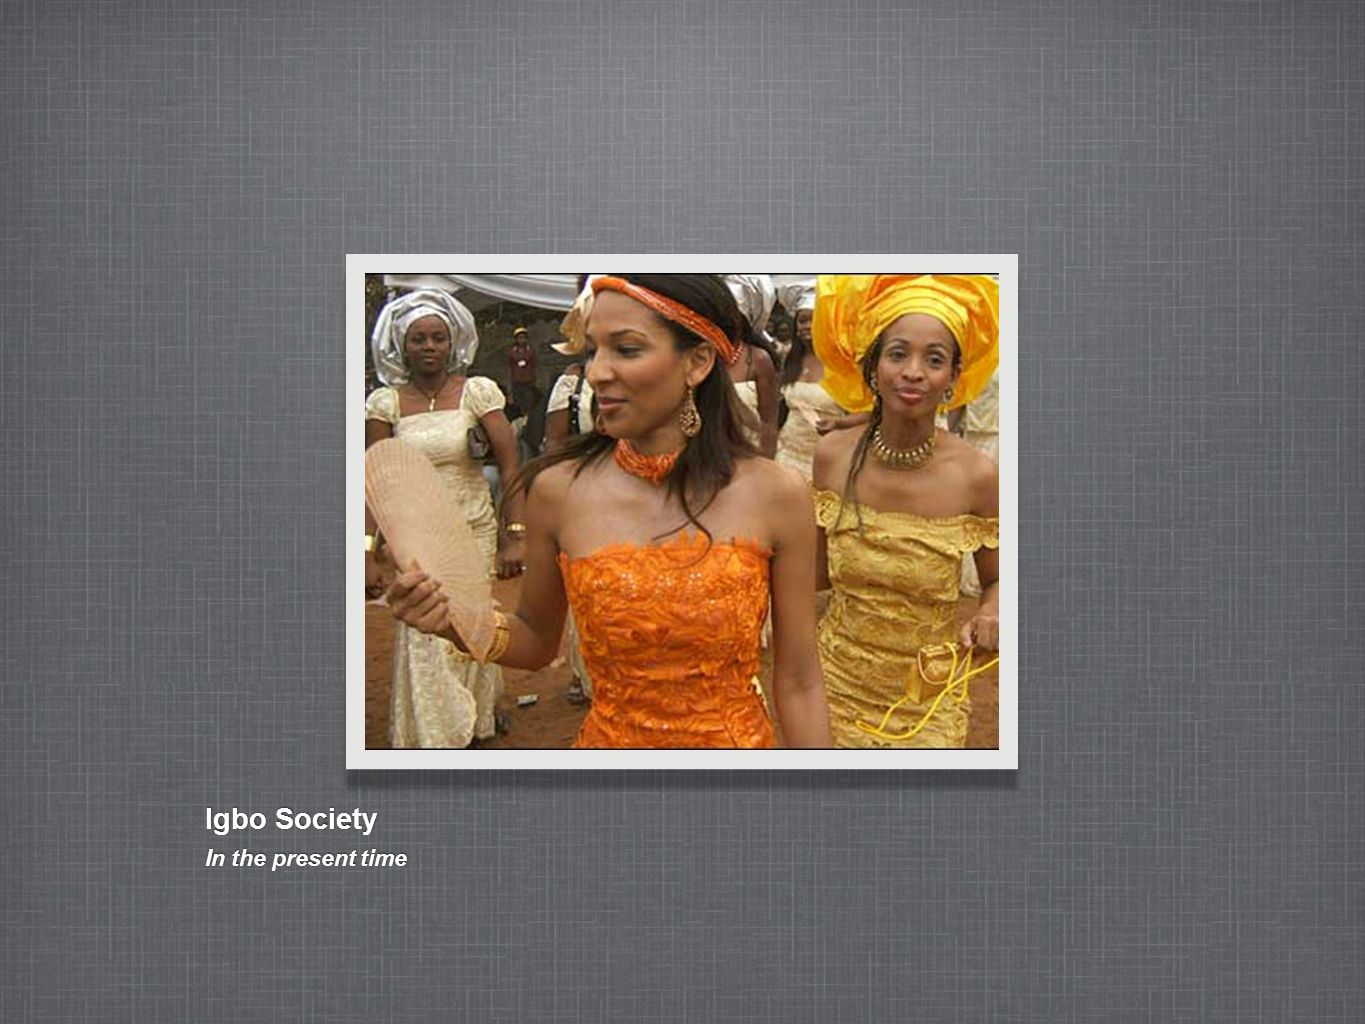 Igbo Society In the present time